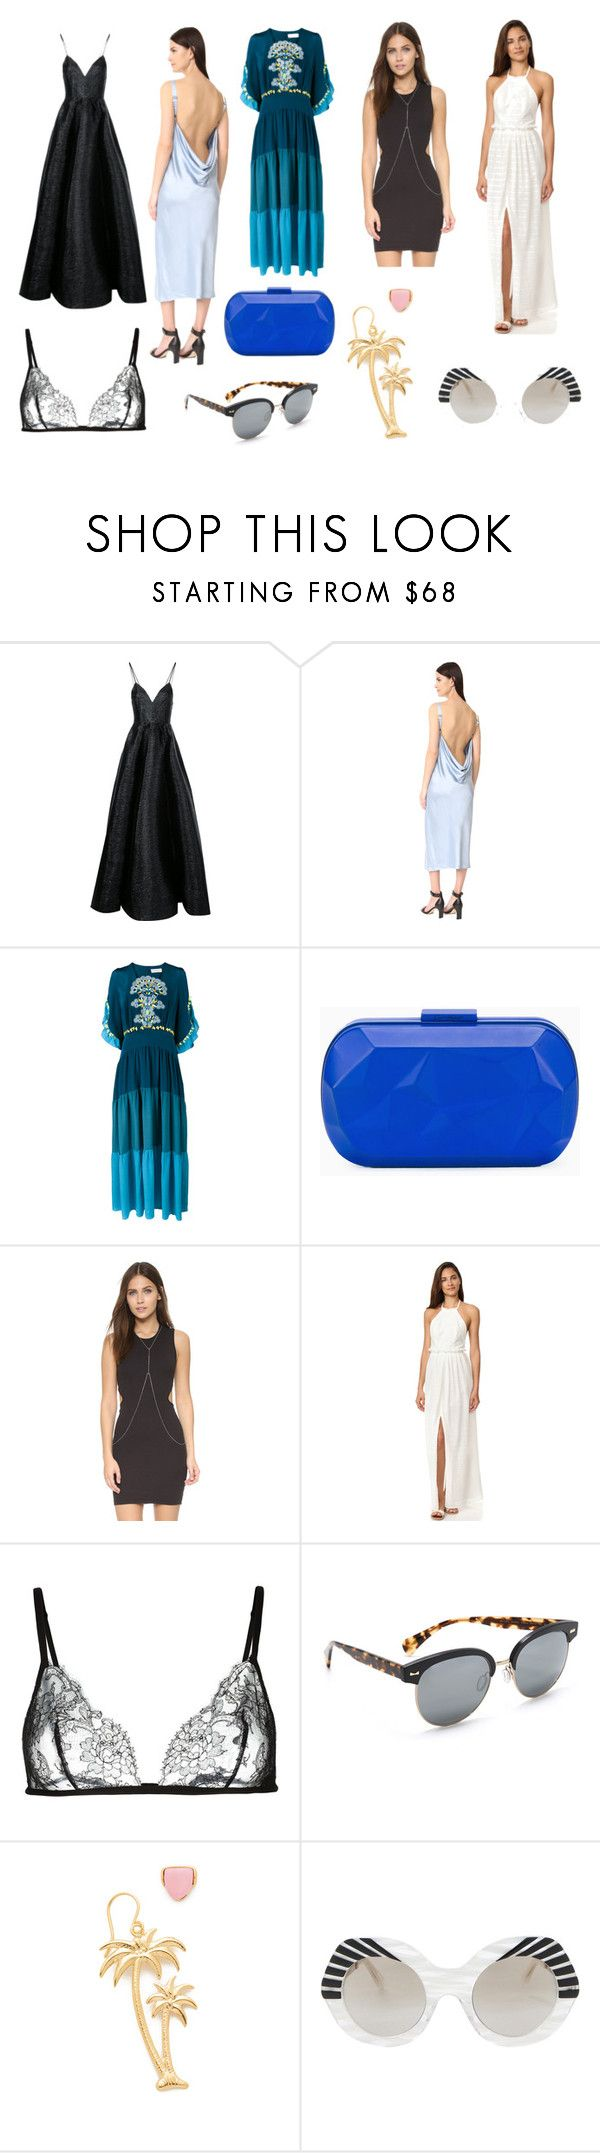 """""""Most Likely"""" by donna-wang1 ❤ liked on Polyvore featuring Alex Perry, rag & bone, Peter Pilotto, Corto Moltedo, Rebecca Minkoff, Ali & Jay, Carine Gilson, Oliver Peoples and Cutler and Gross"""